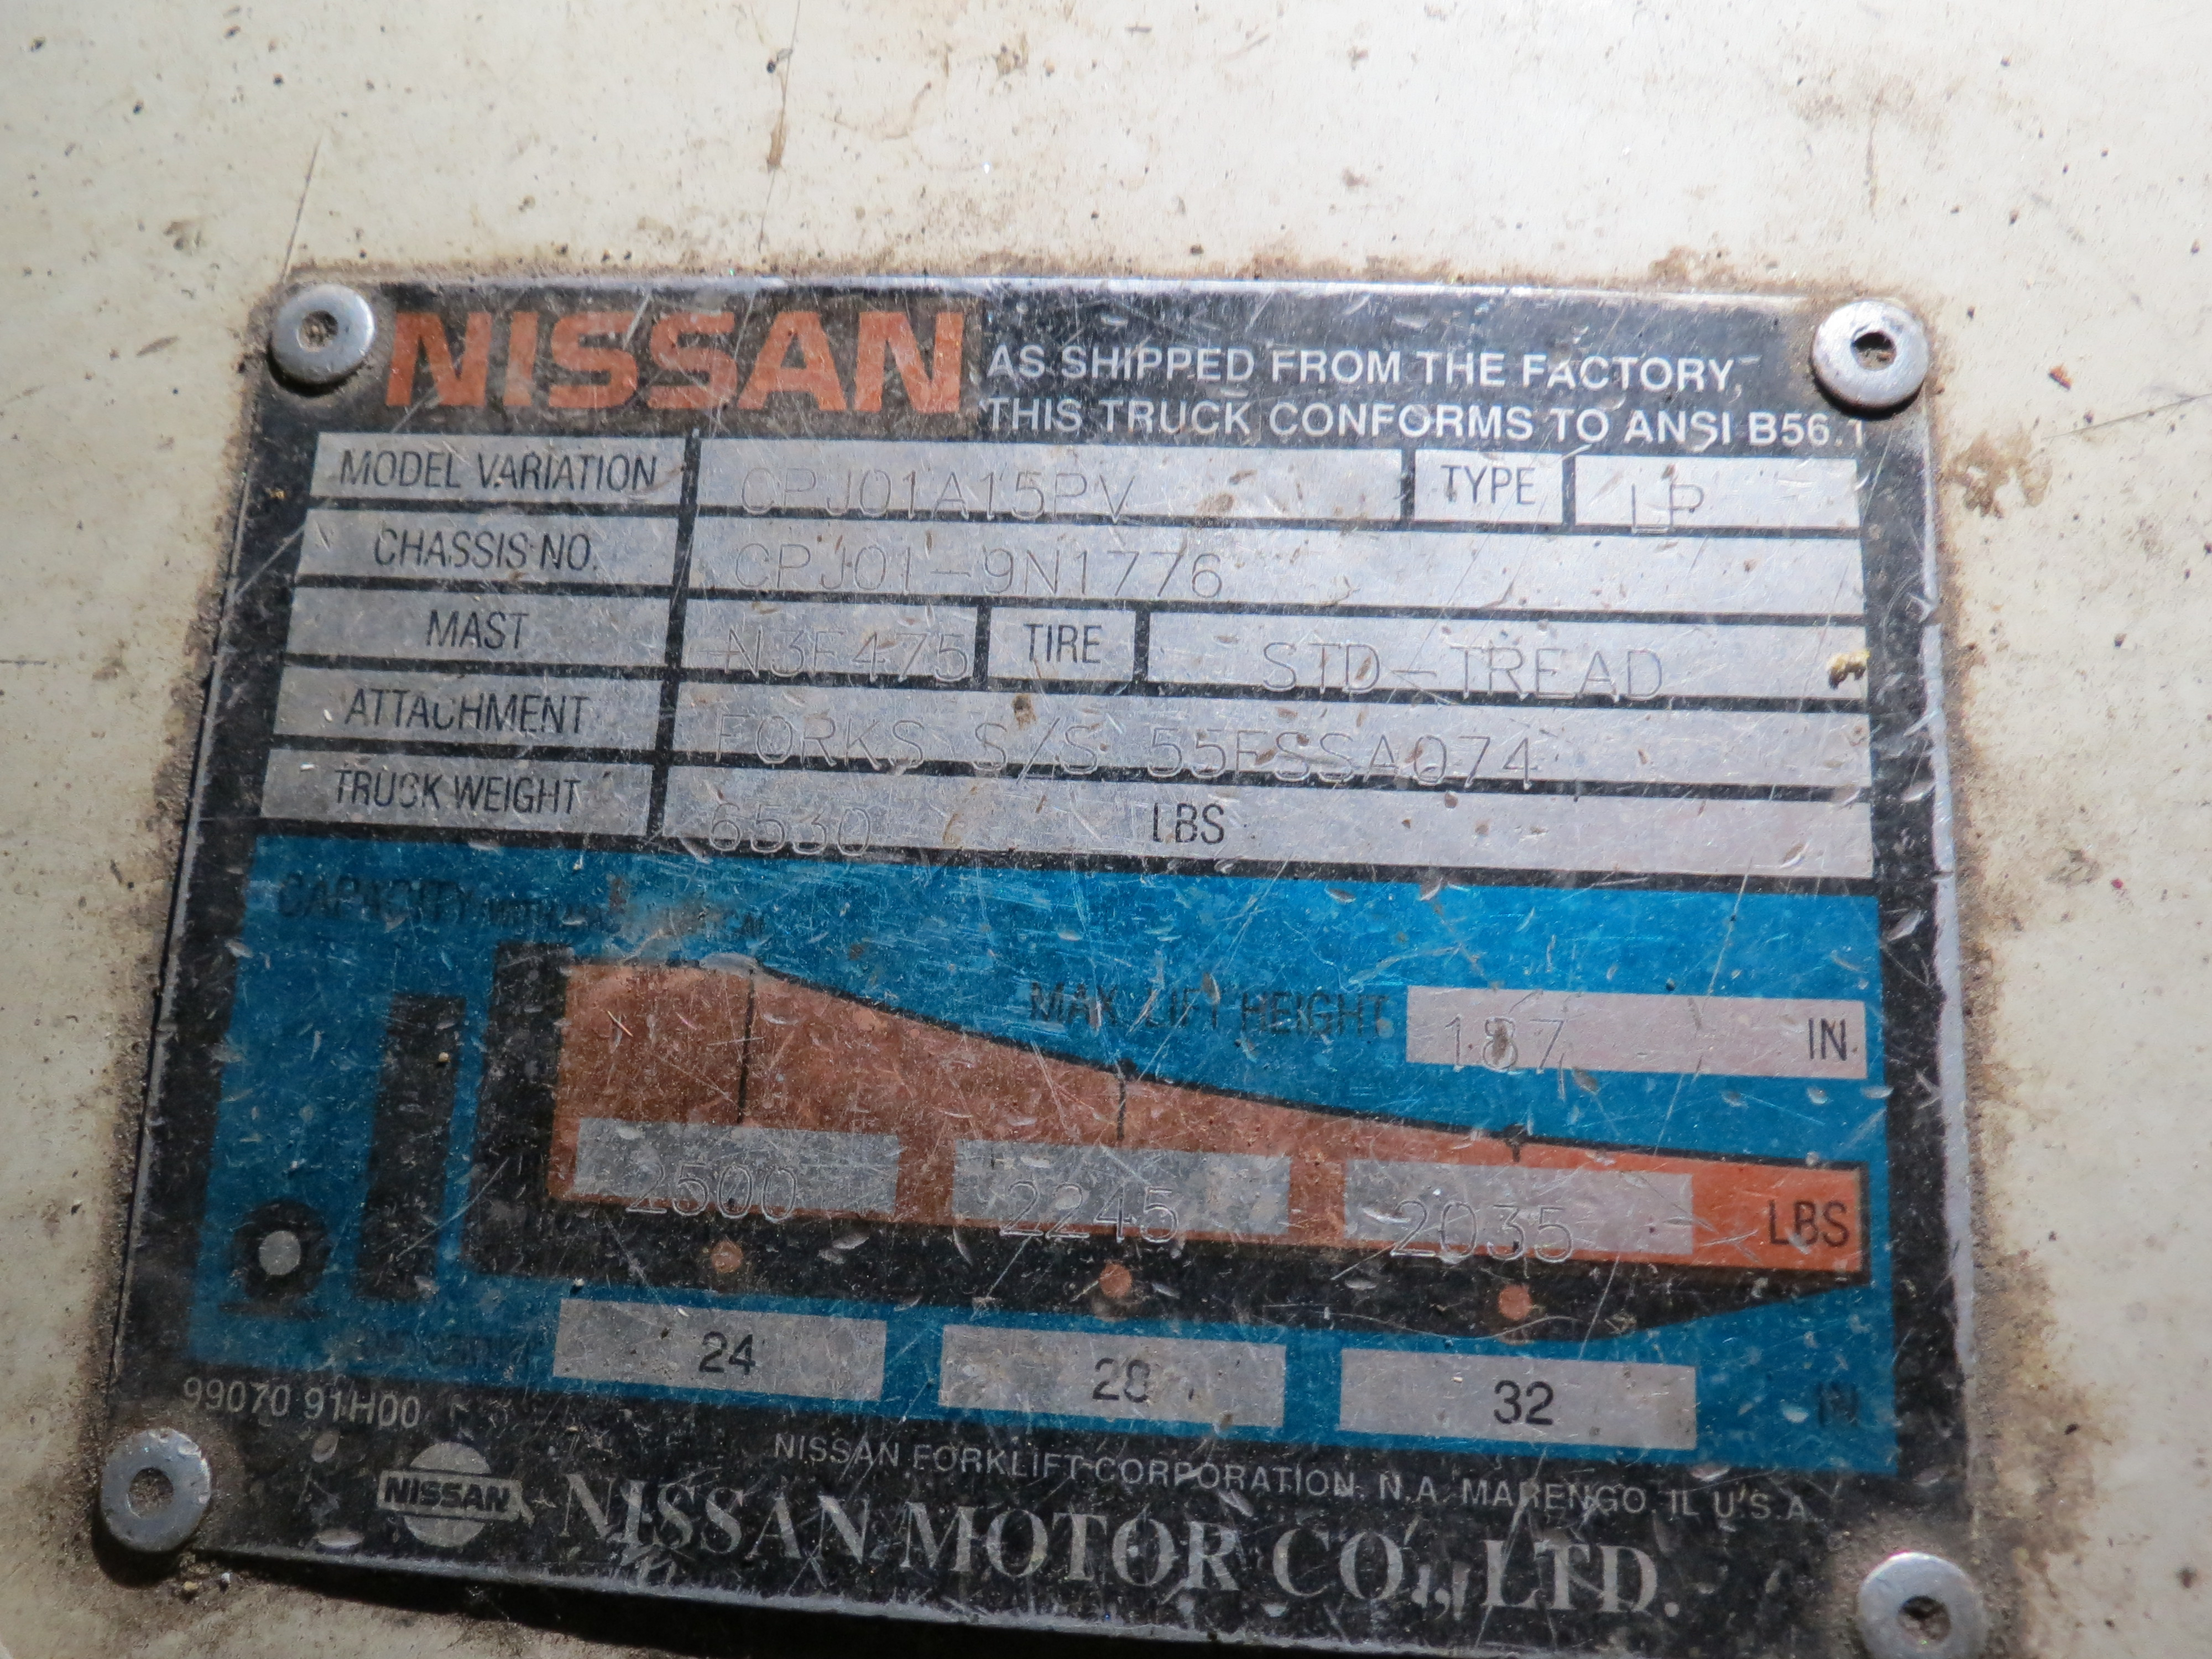 Nissan Model CPJ01A15PV 3-Stage 2500K Capacity LPG Forklift with Side Shift - Image 6 of 6